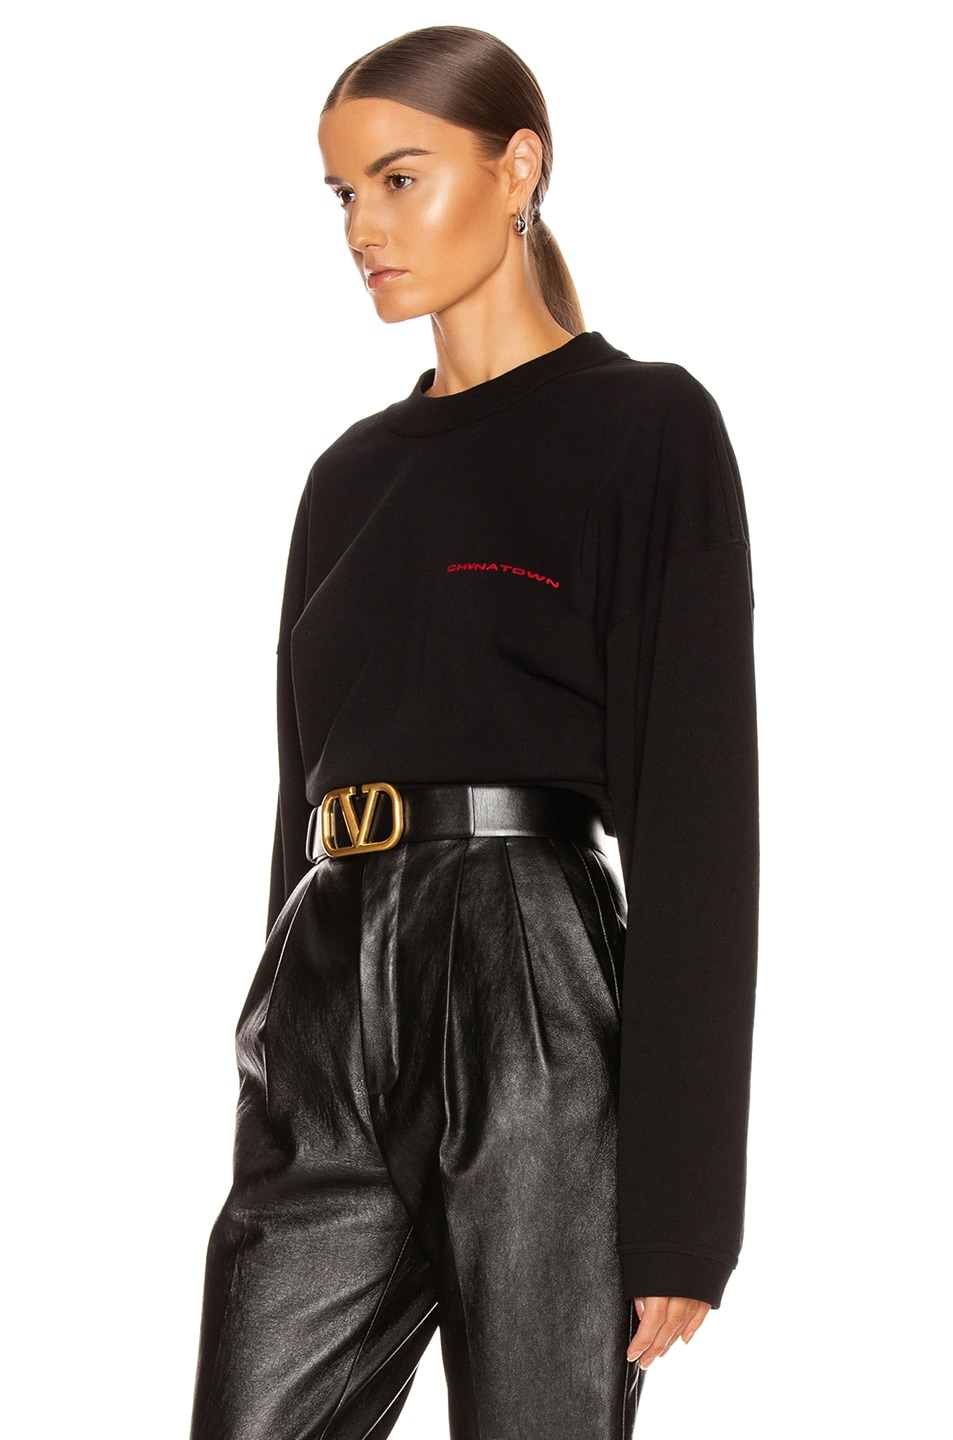 Image 3 of Alexander Wang Chynatown Chain Long Sleeve Top in Black